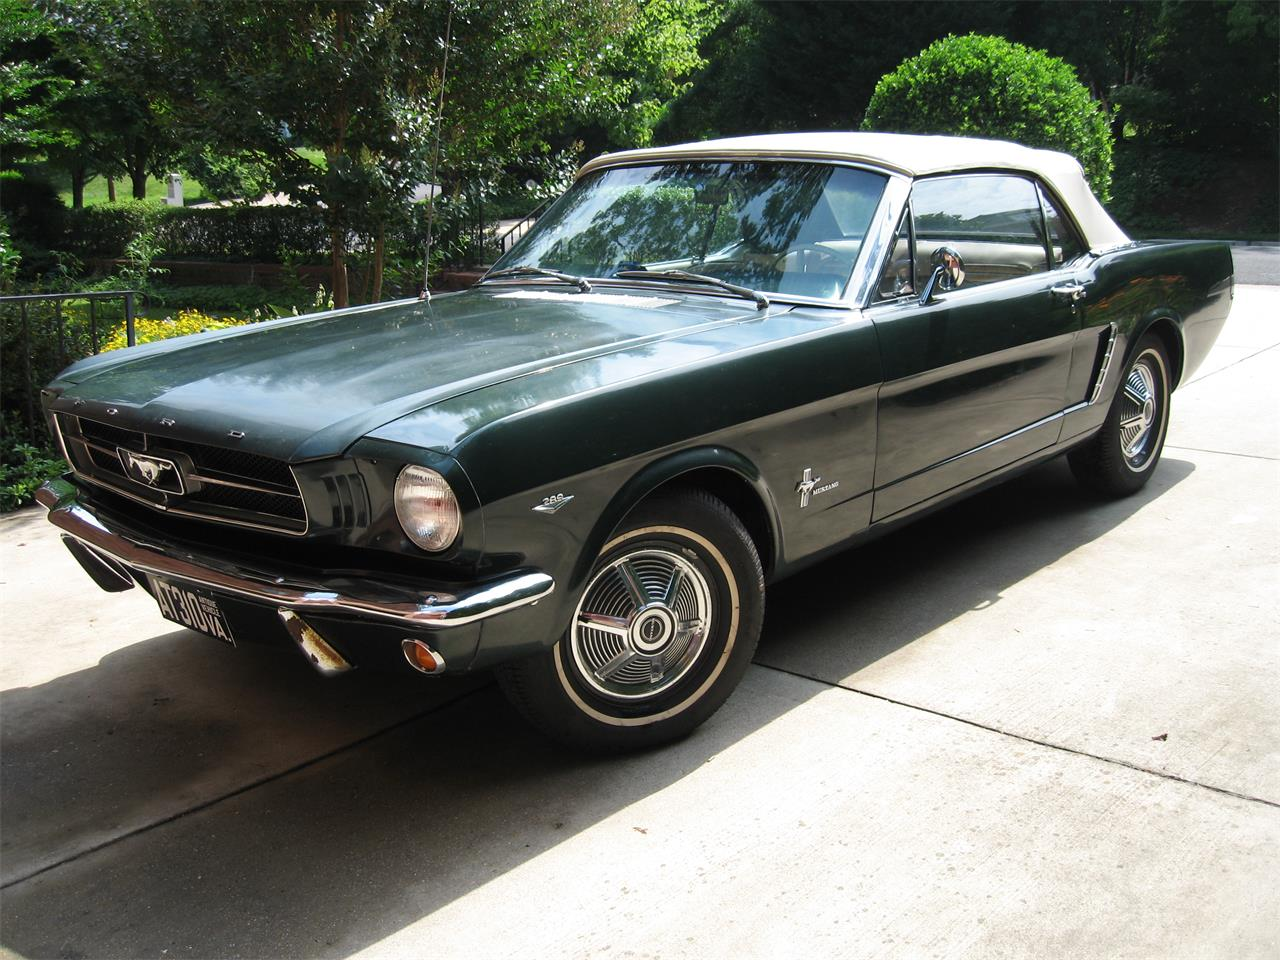 Large Picture of Classic 1964 Ford Mustang - $26,995.00 Offered by a Private Seller - BZ8Z